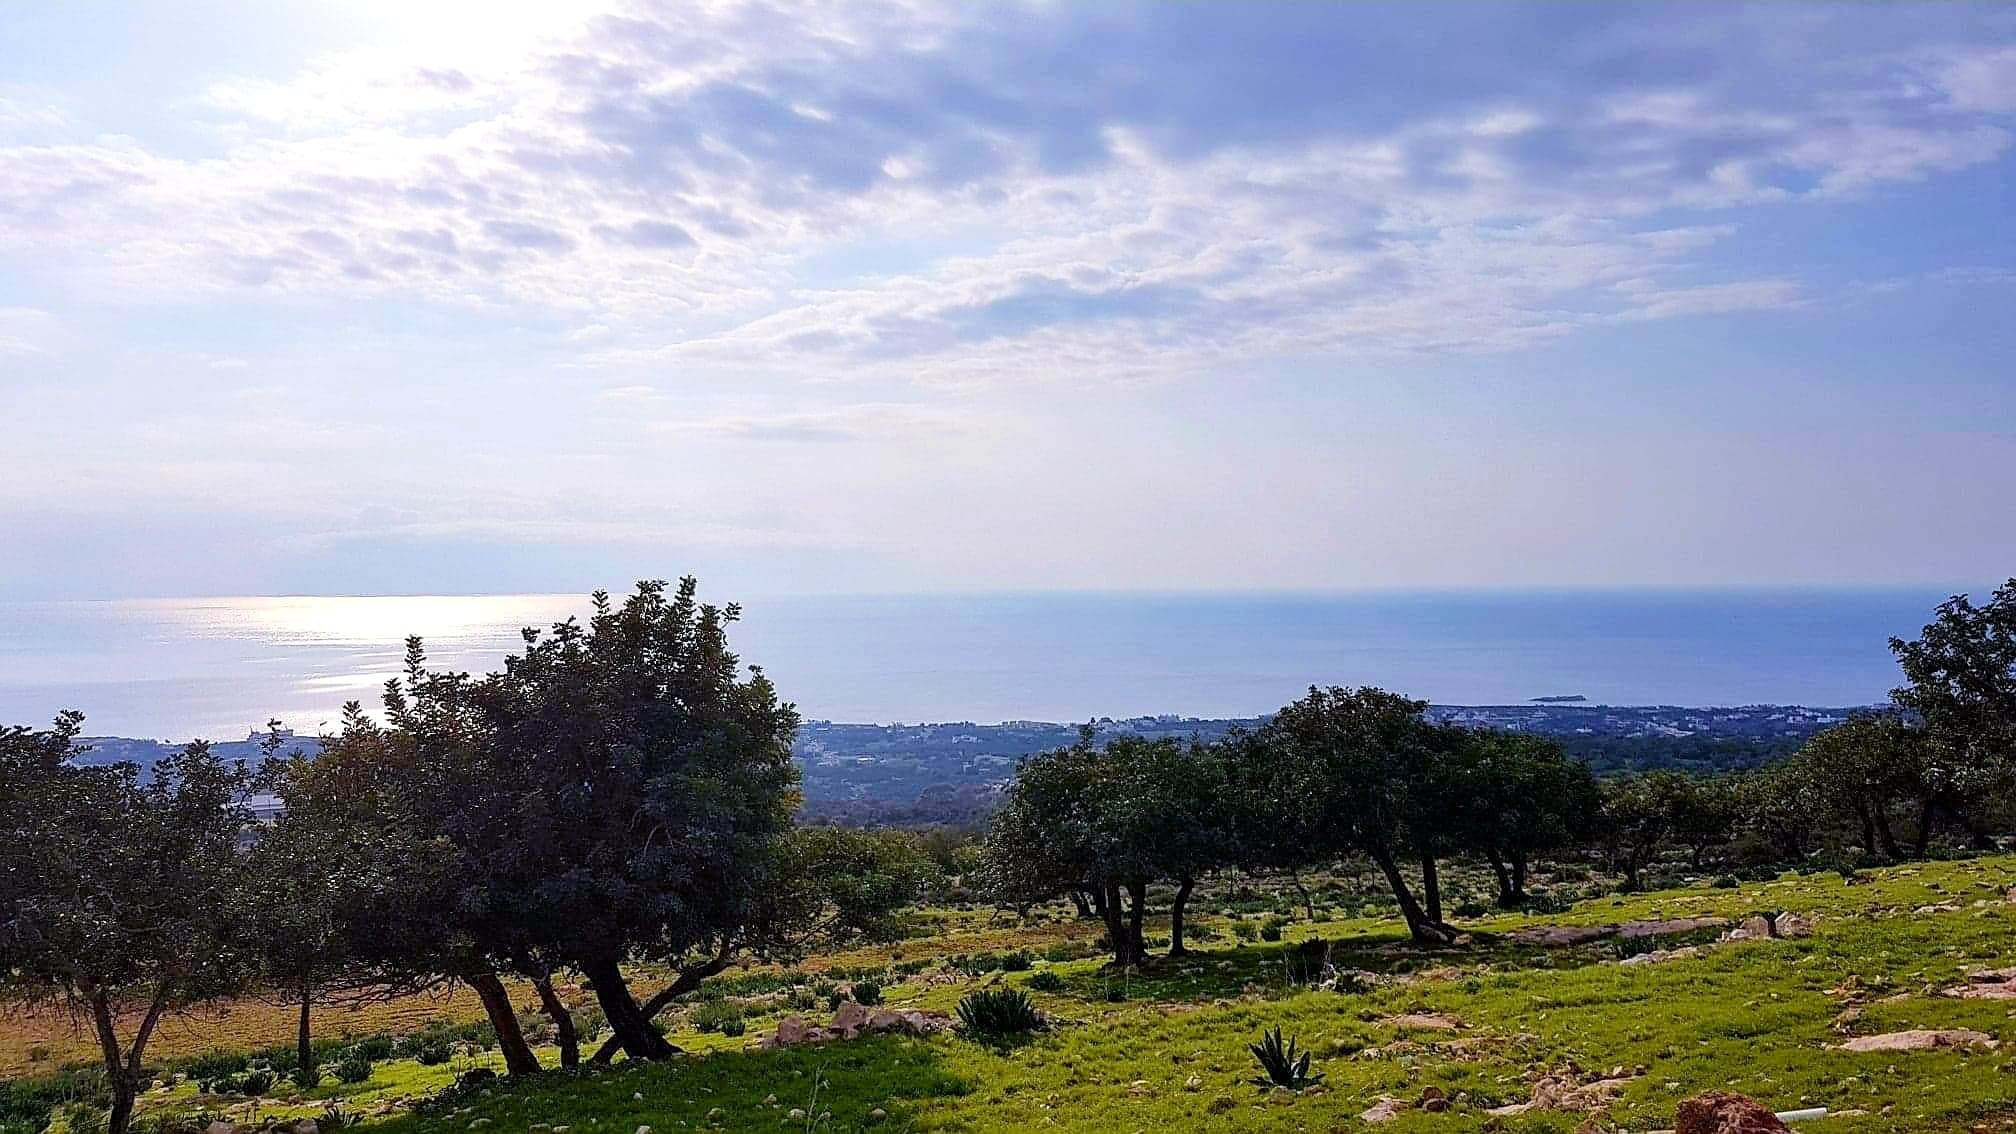 Land for Sale in Peyia, Cyprus